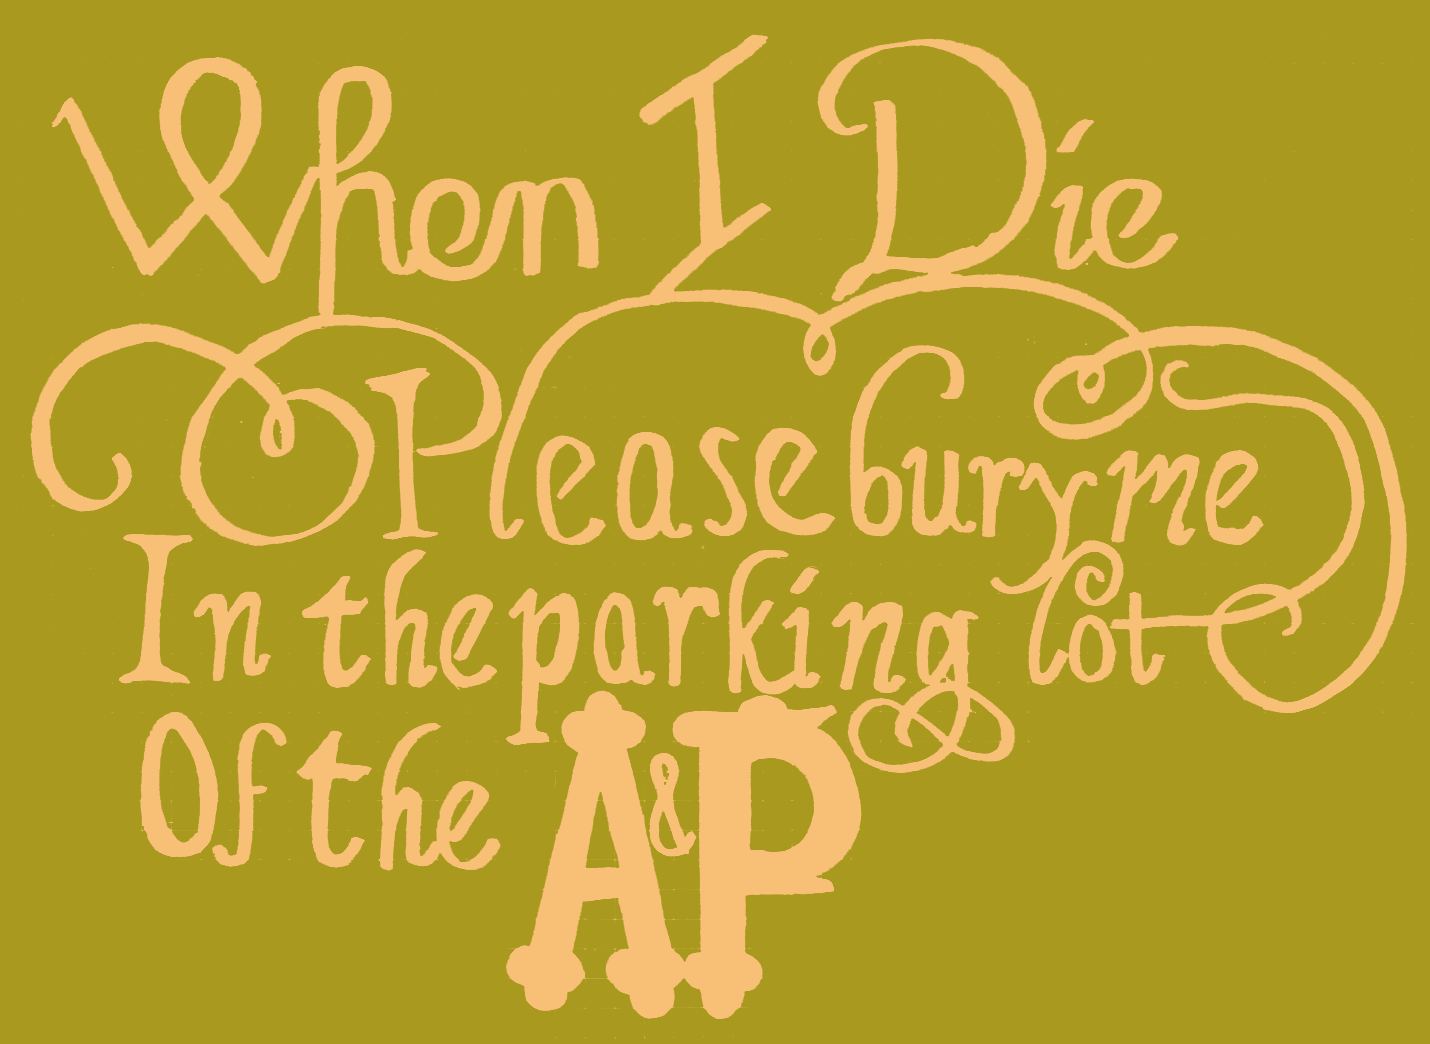 bury me in the parking lot of the A&P - image 4 - student project